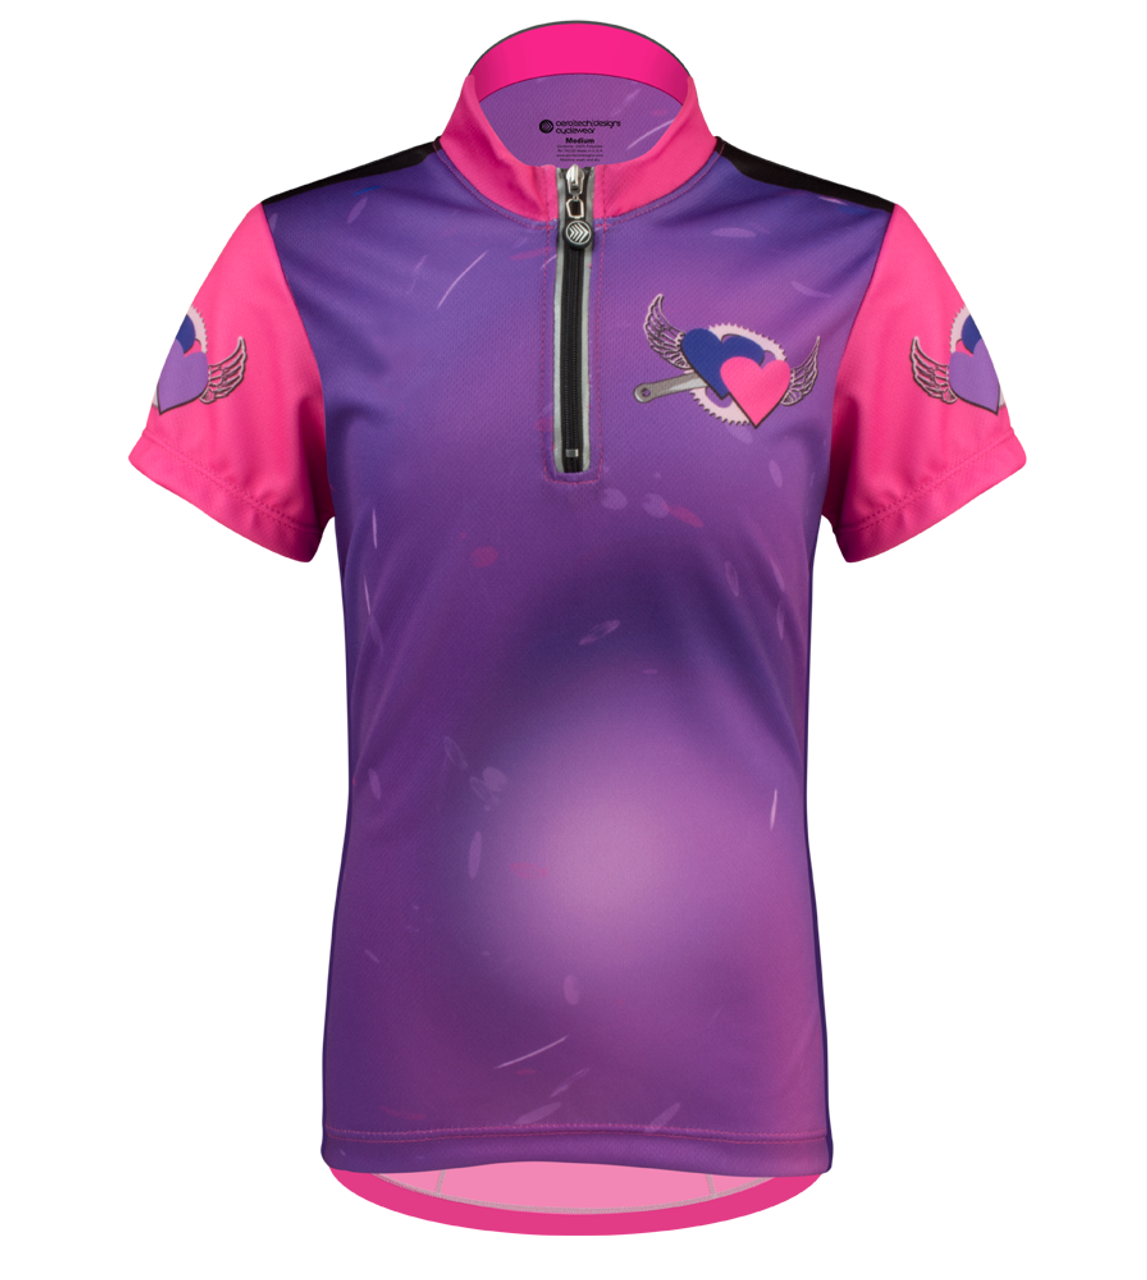 1283c711d Aero Tech Youth Jersey - Flying Hearts Children's Cycling Jersey